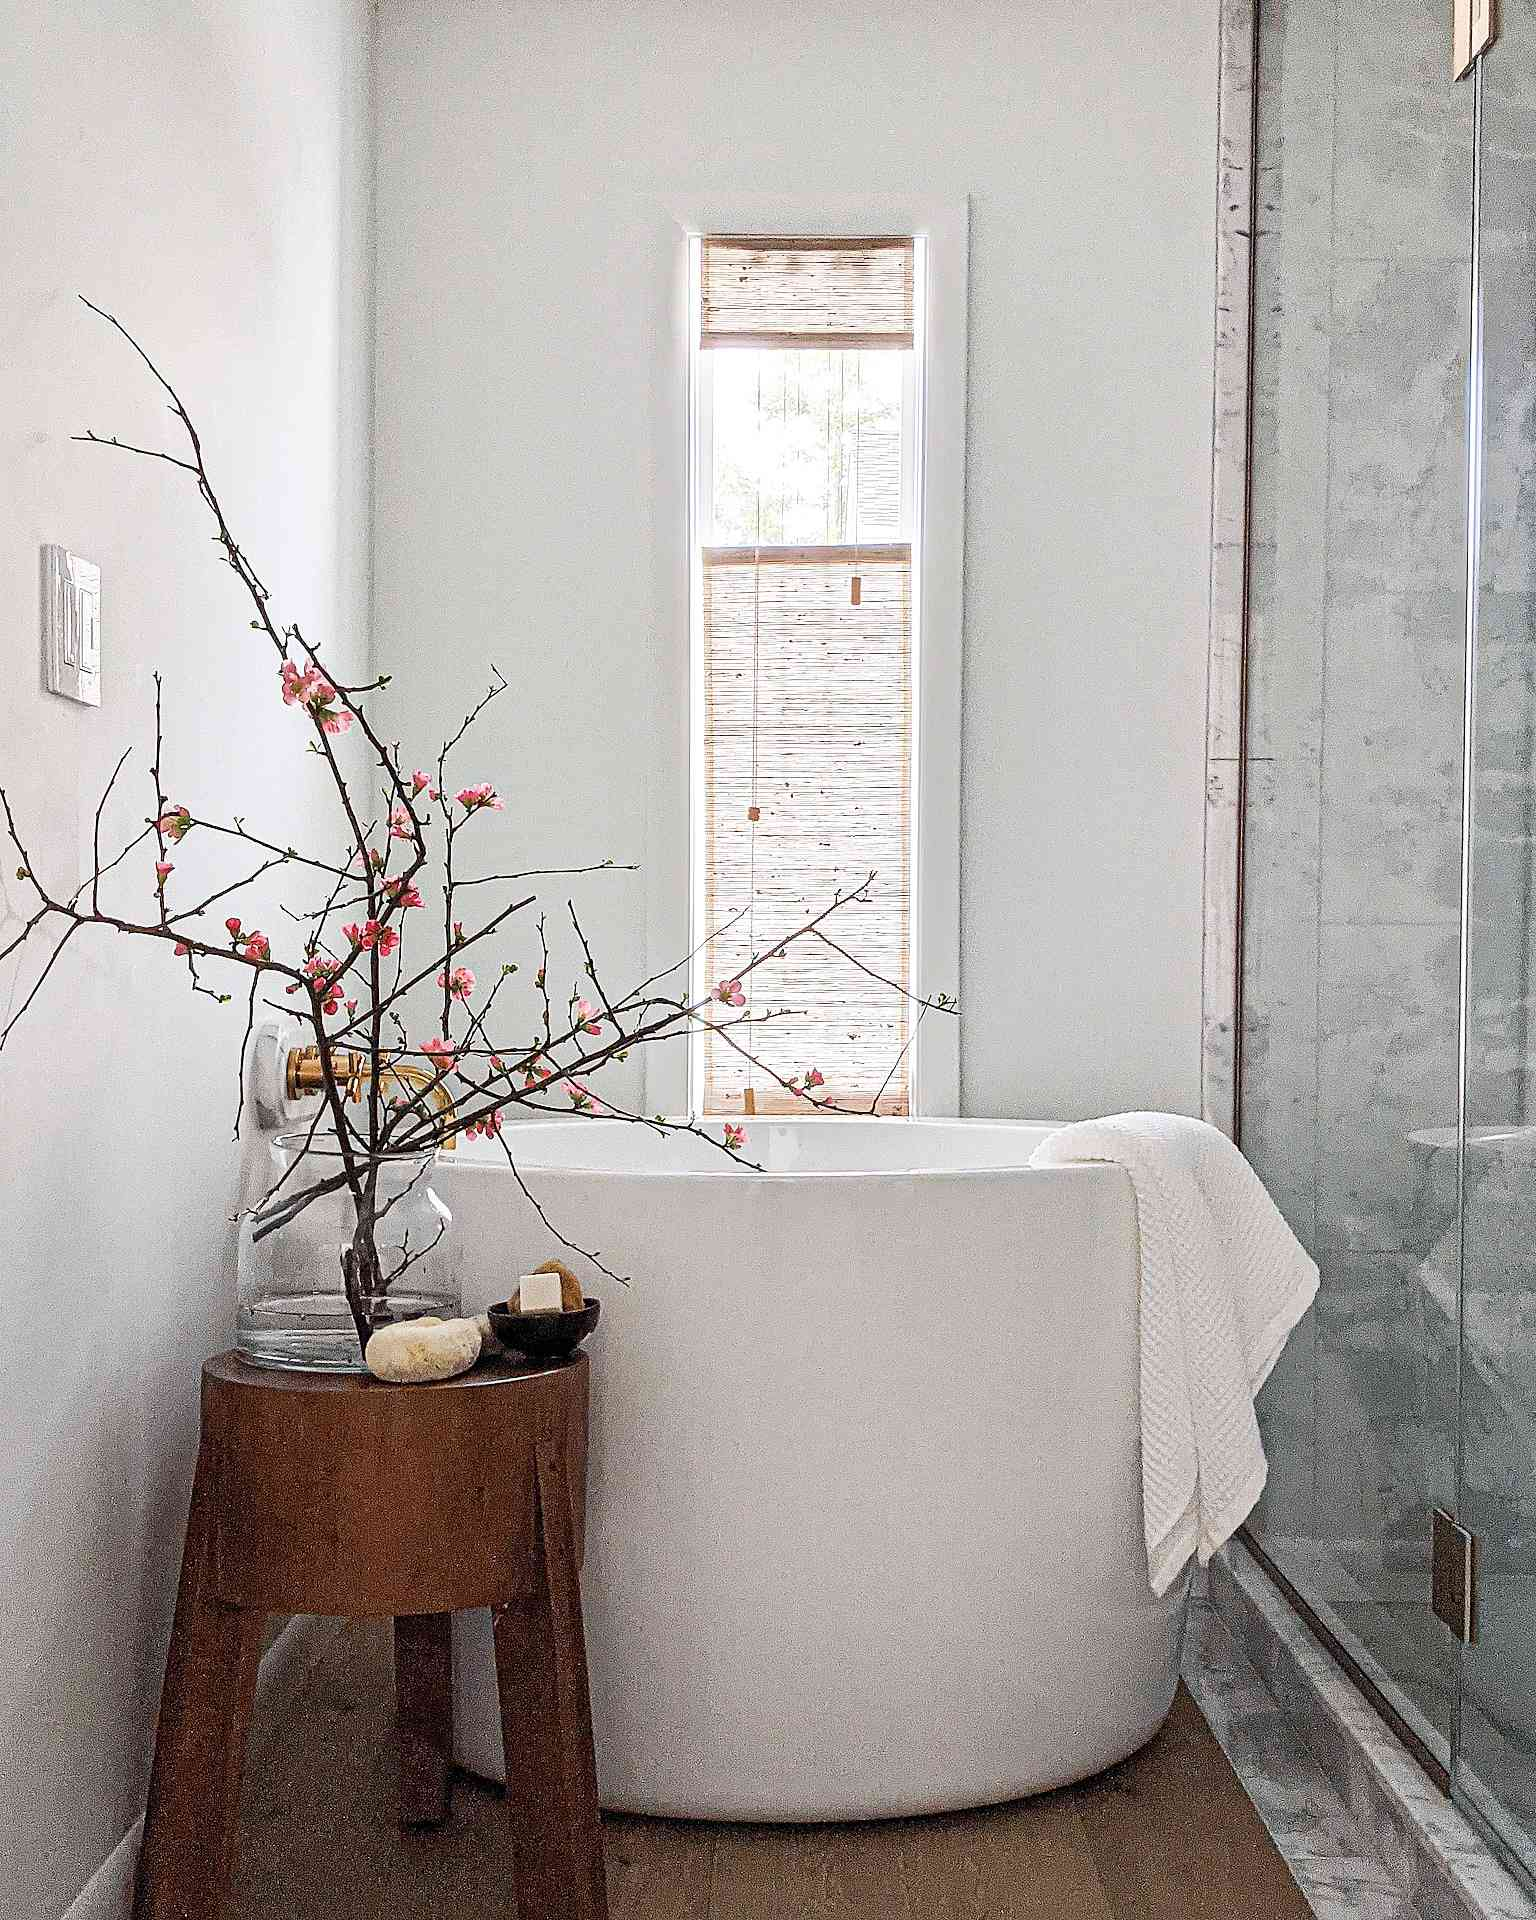 The primary bathroom in Molly & Fritz's home features a Japanese soaking tub